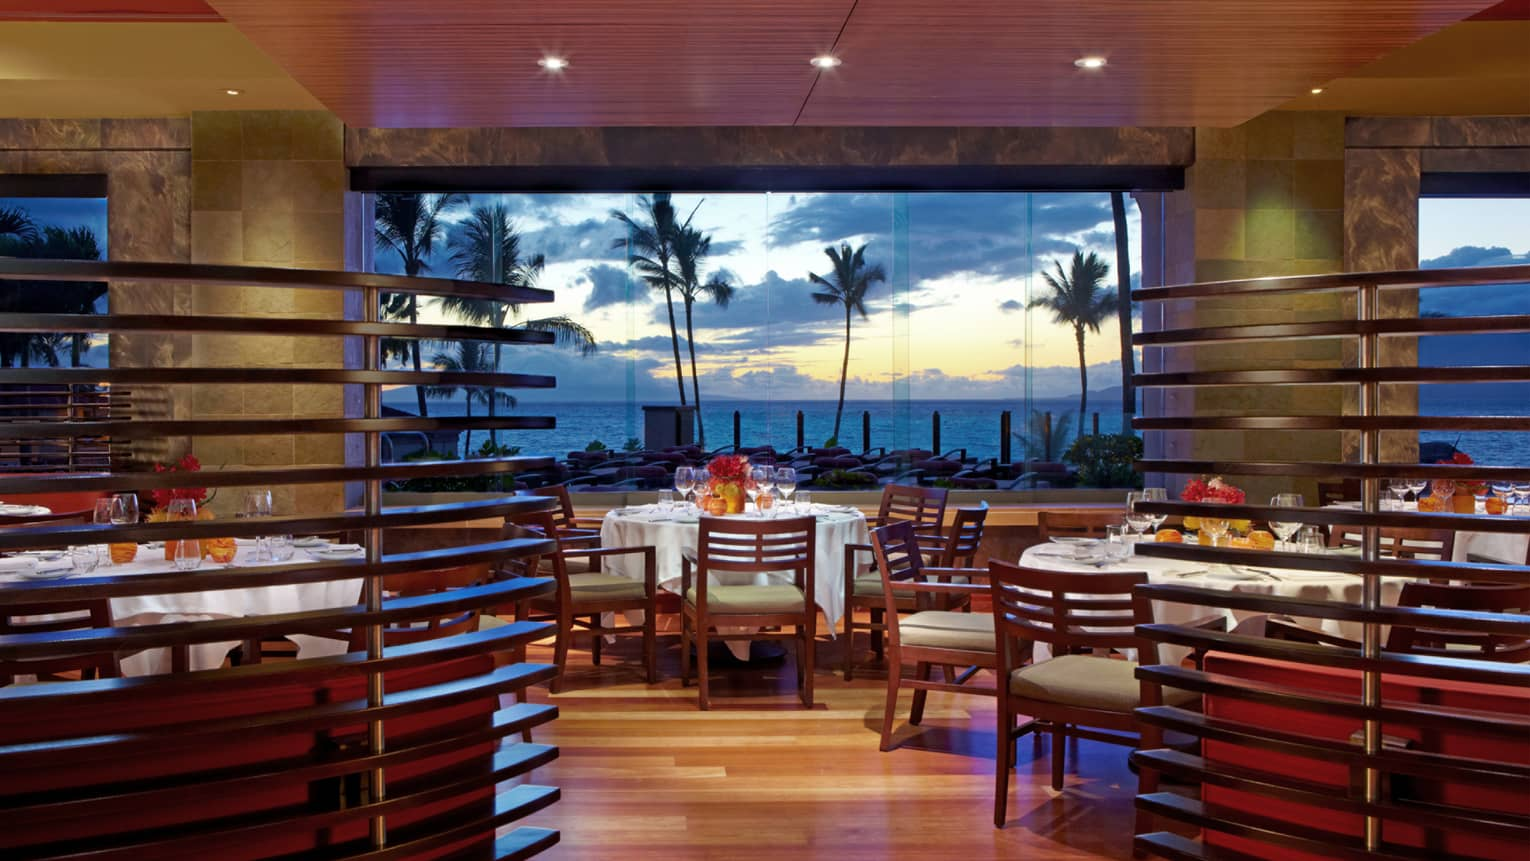 Spago dining room with wood decor, floor-to-ceiling windows looking out at palm trees, oceans and sunset